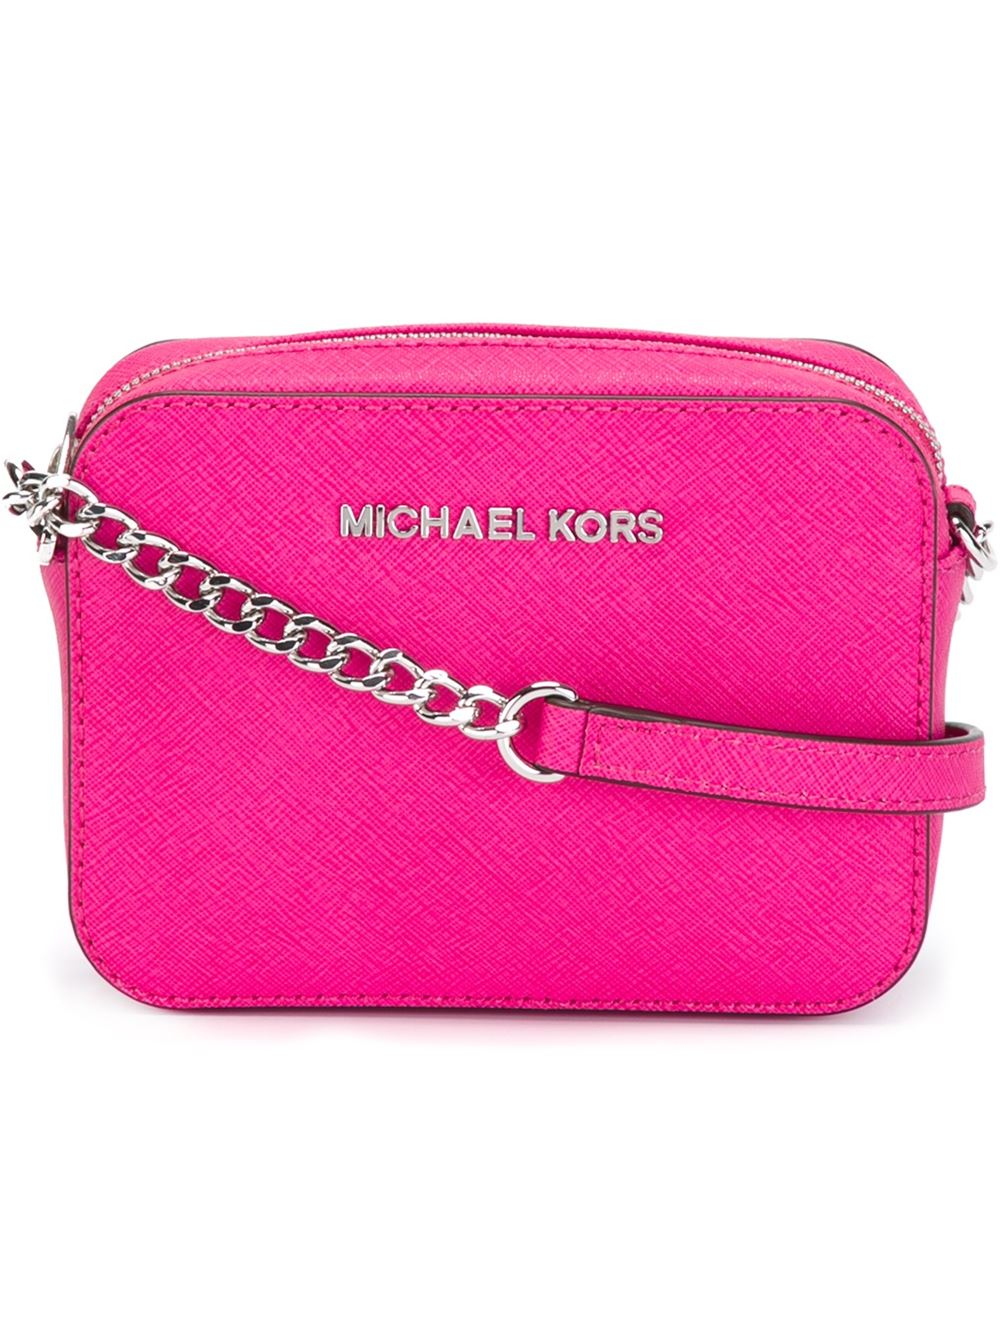 485c89c36d29 ... greece lyst michael michael kors jet set travel mini cross body bag in  pink 797a5 abd2b